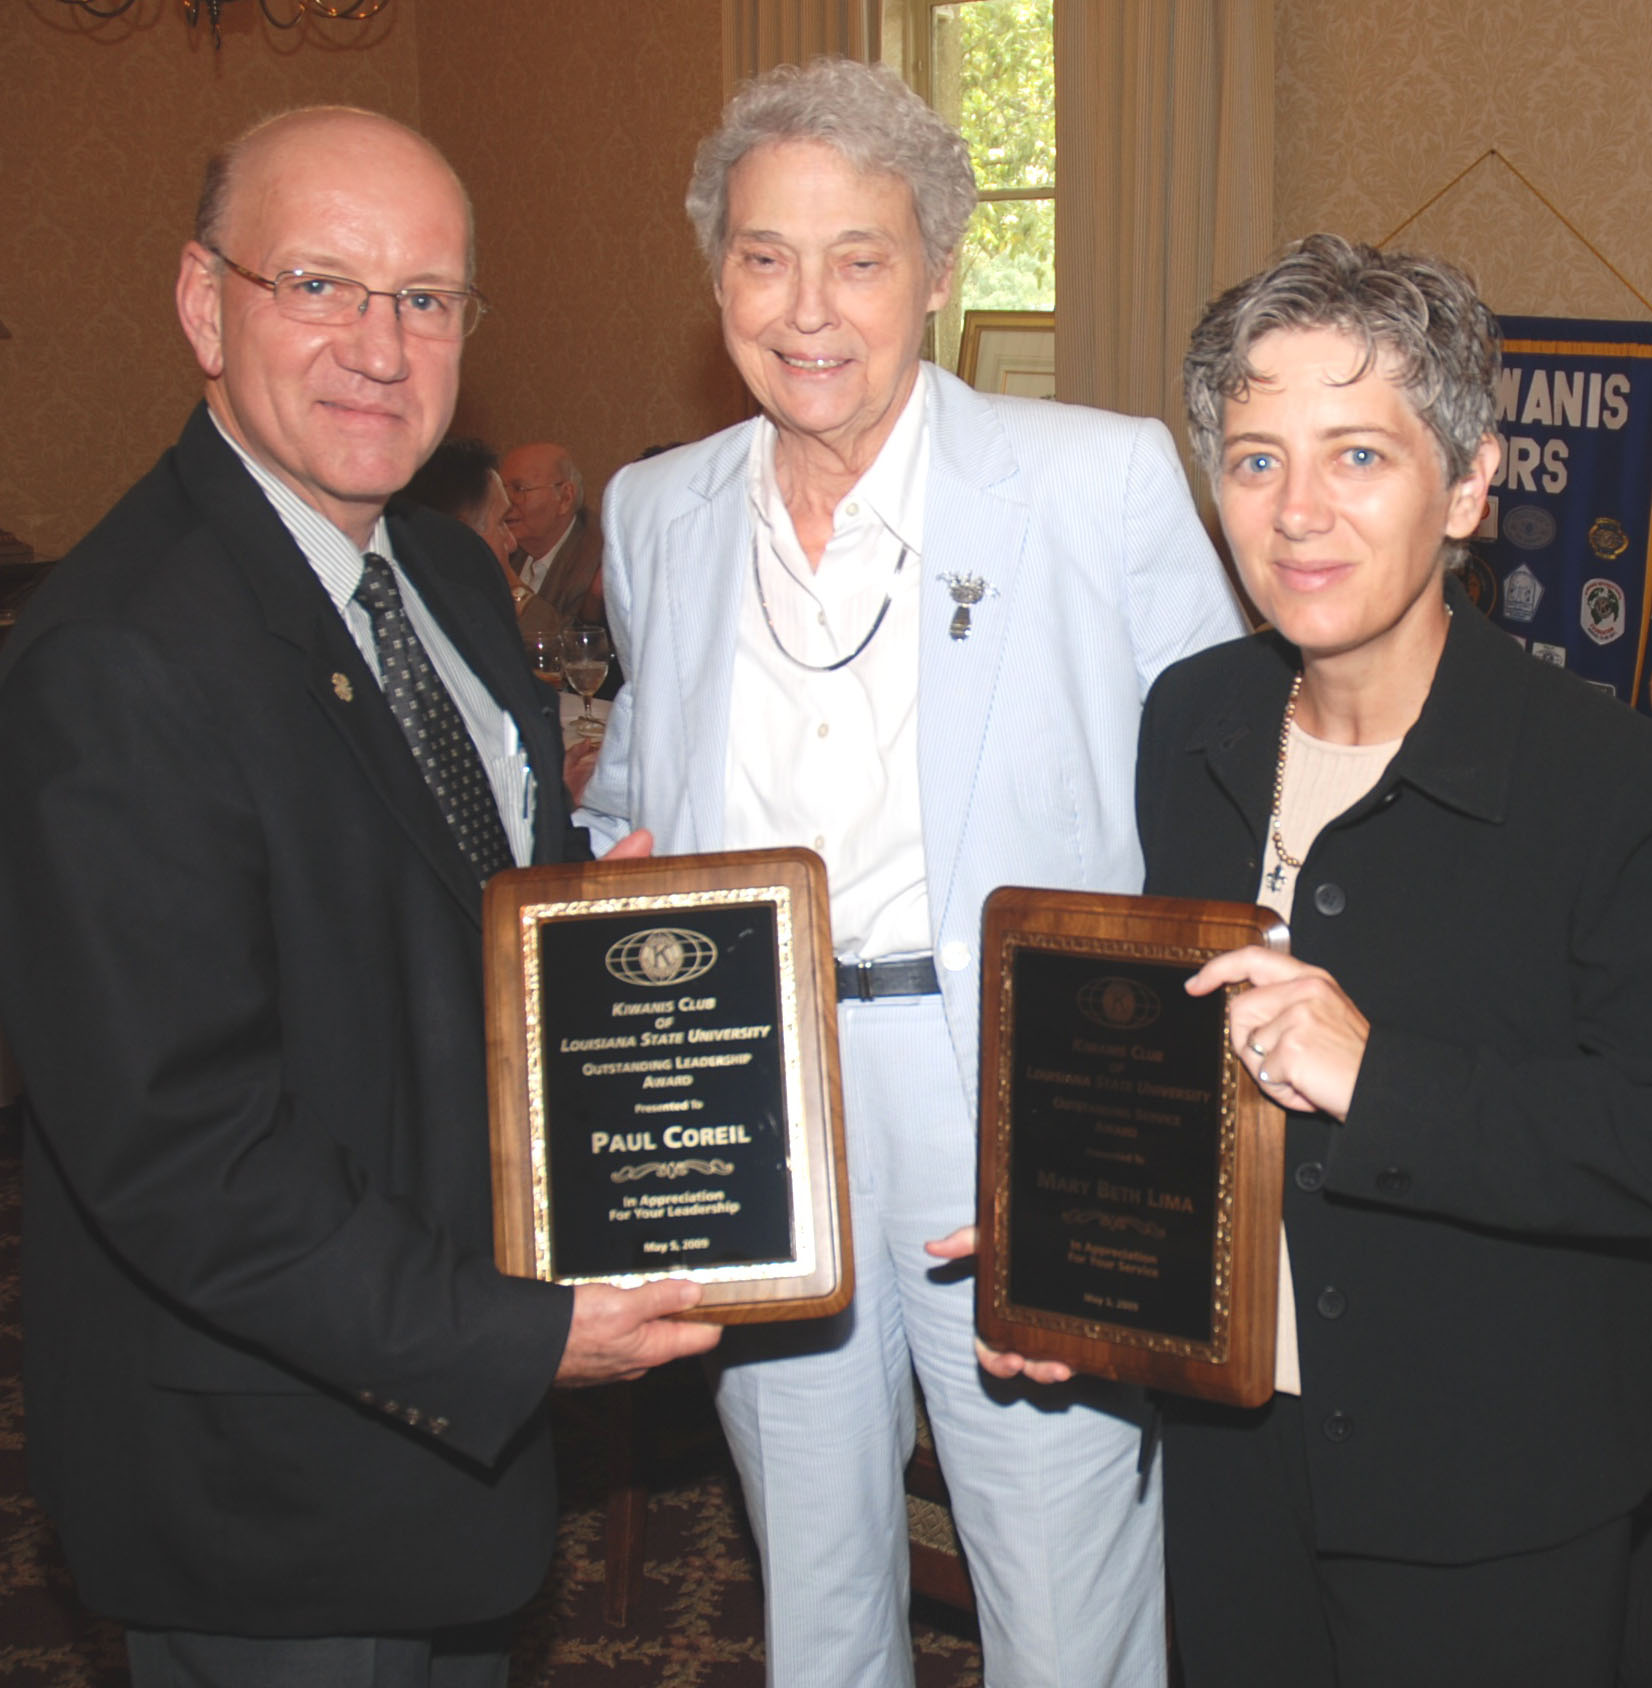 Coreil, Lima win top 2009 awards from LSU Kiwanis Club